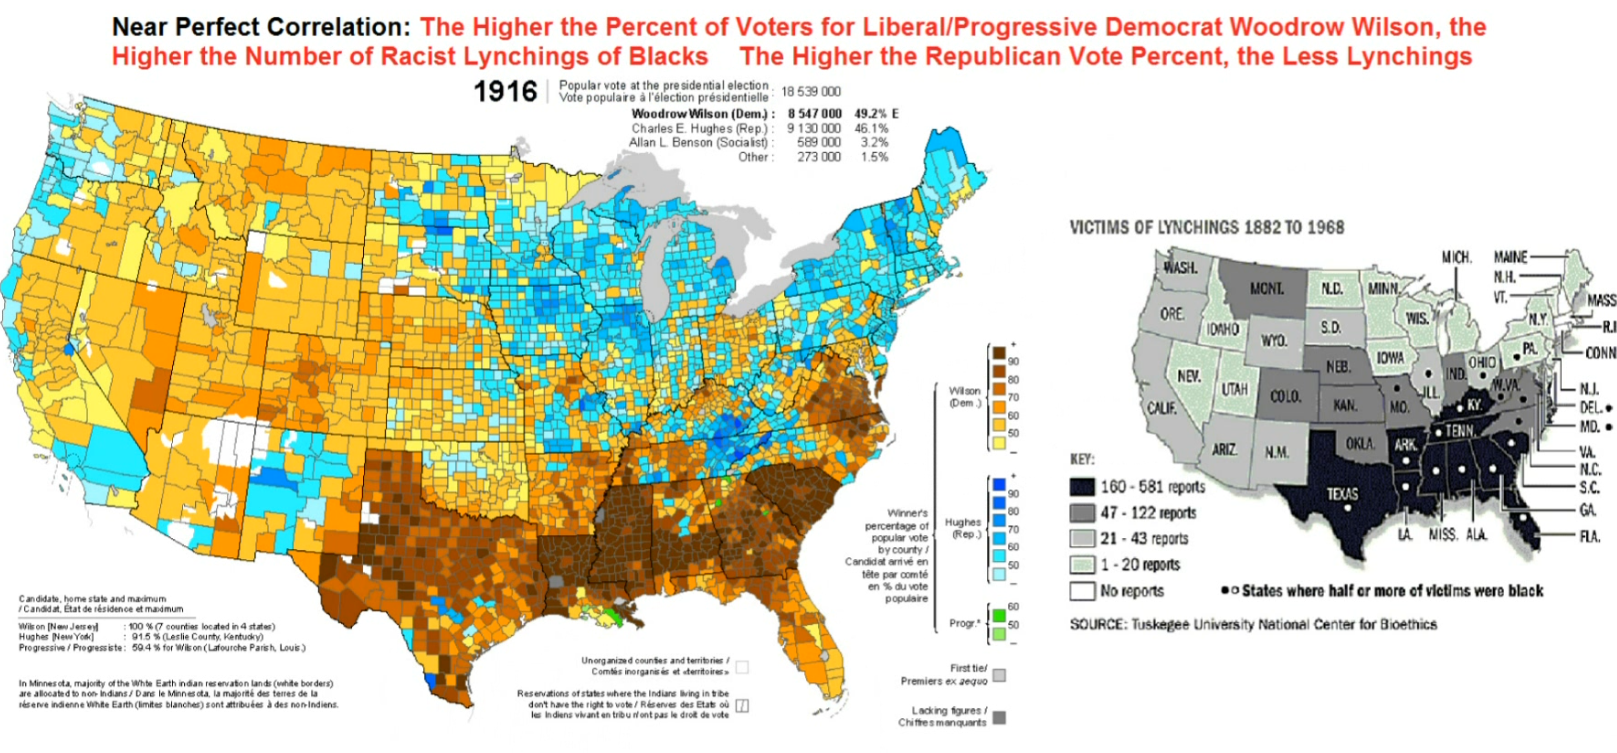 1916DemocratWilsonMapCountyWithLynchingDensityCorrelation